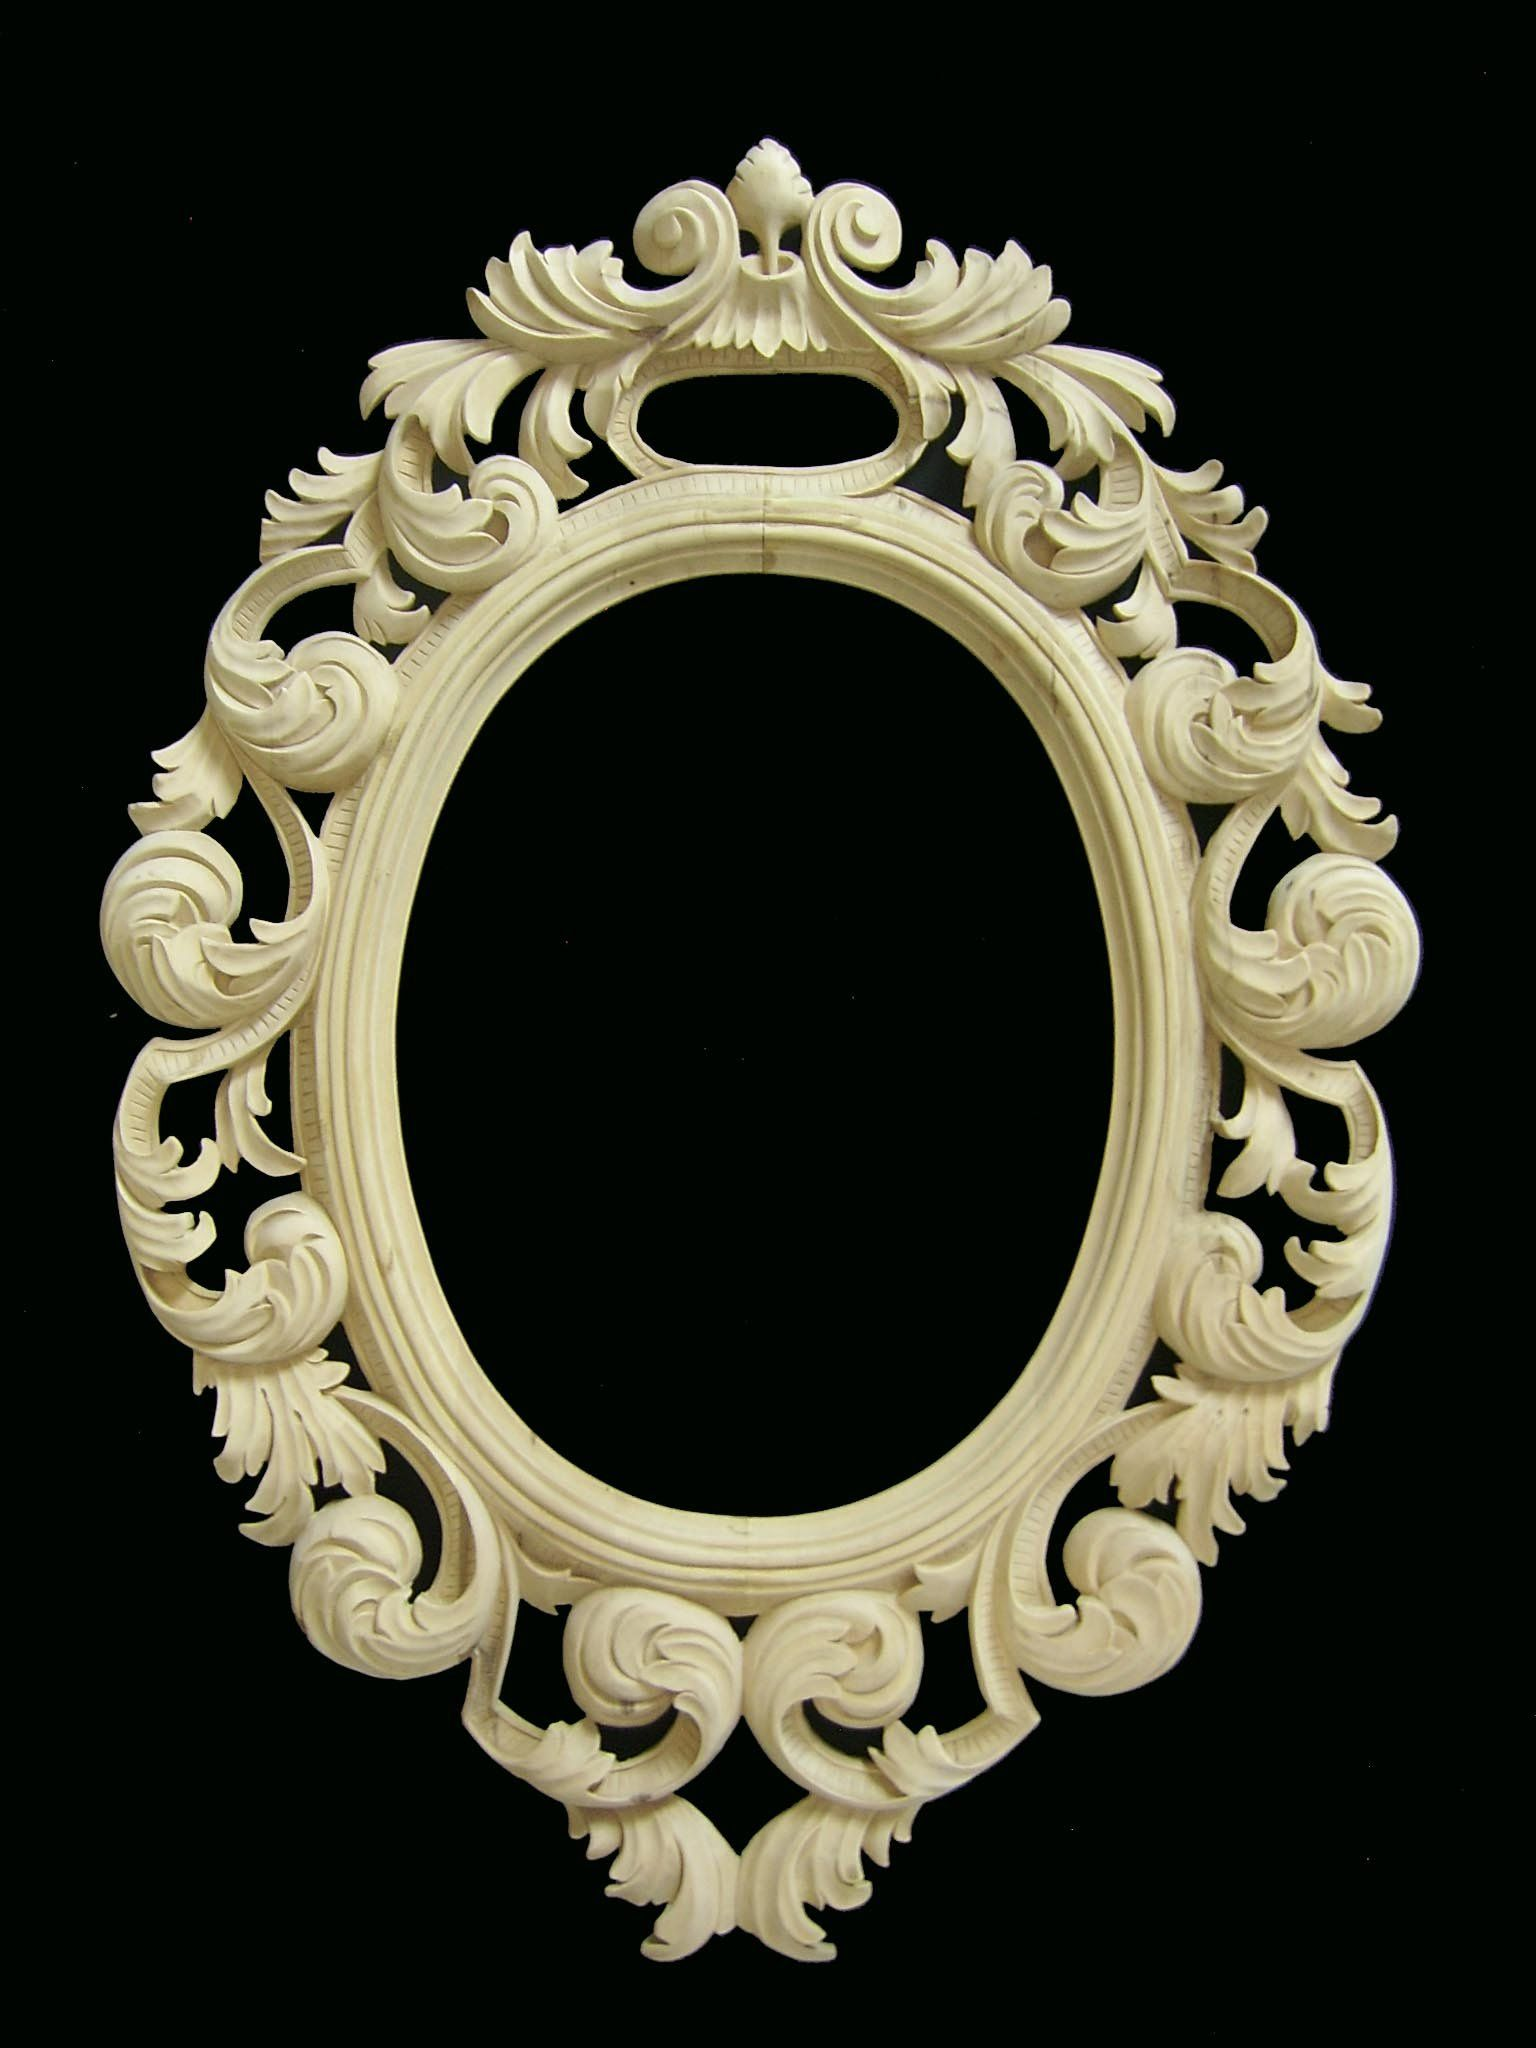 Frames for mirrors